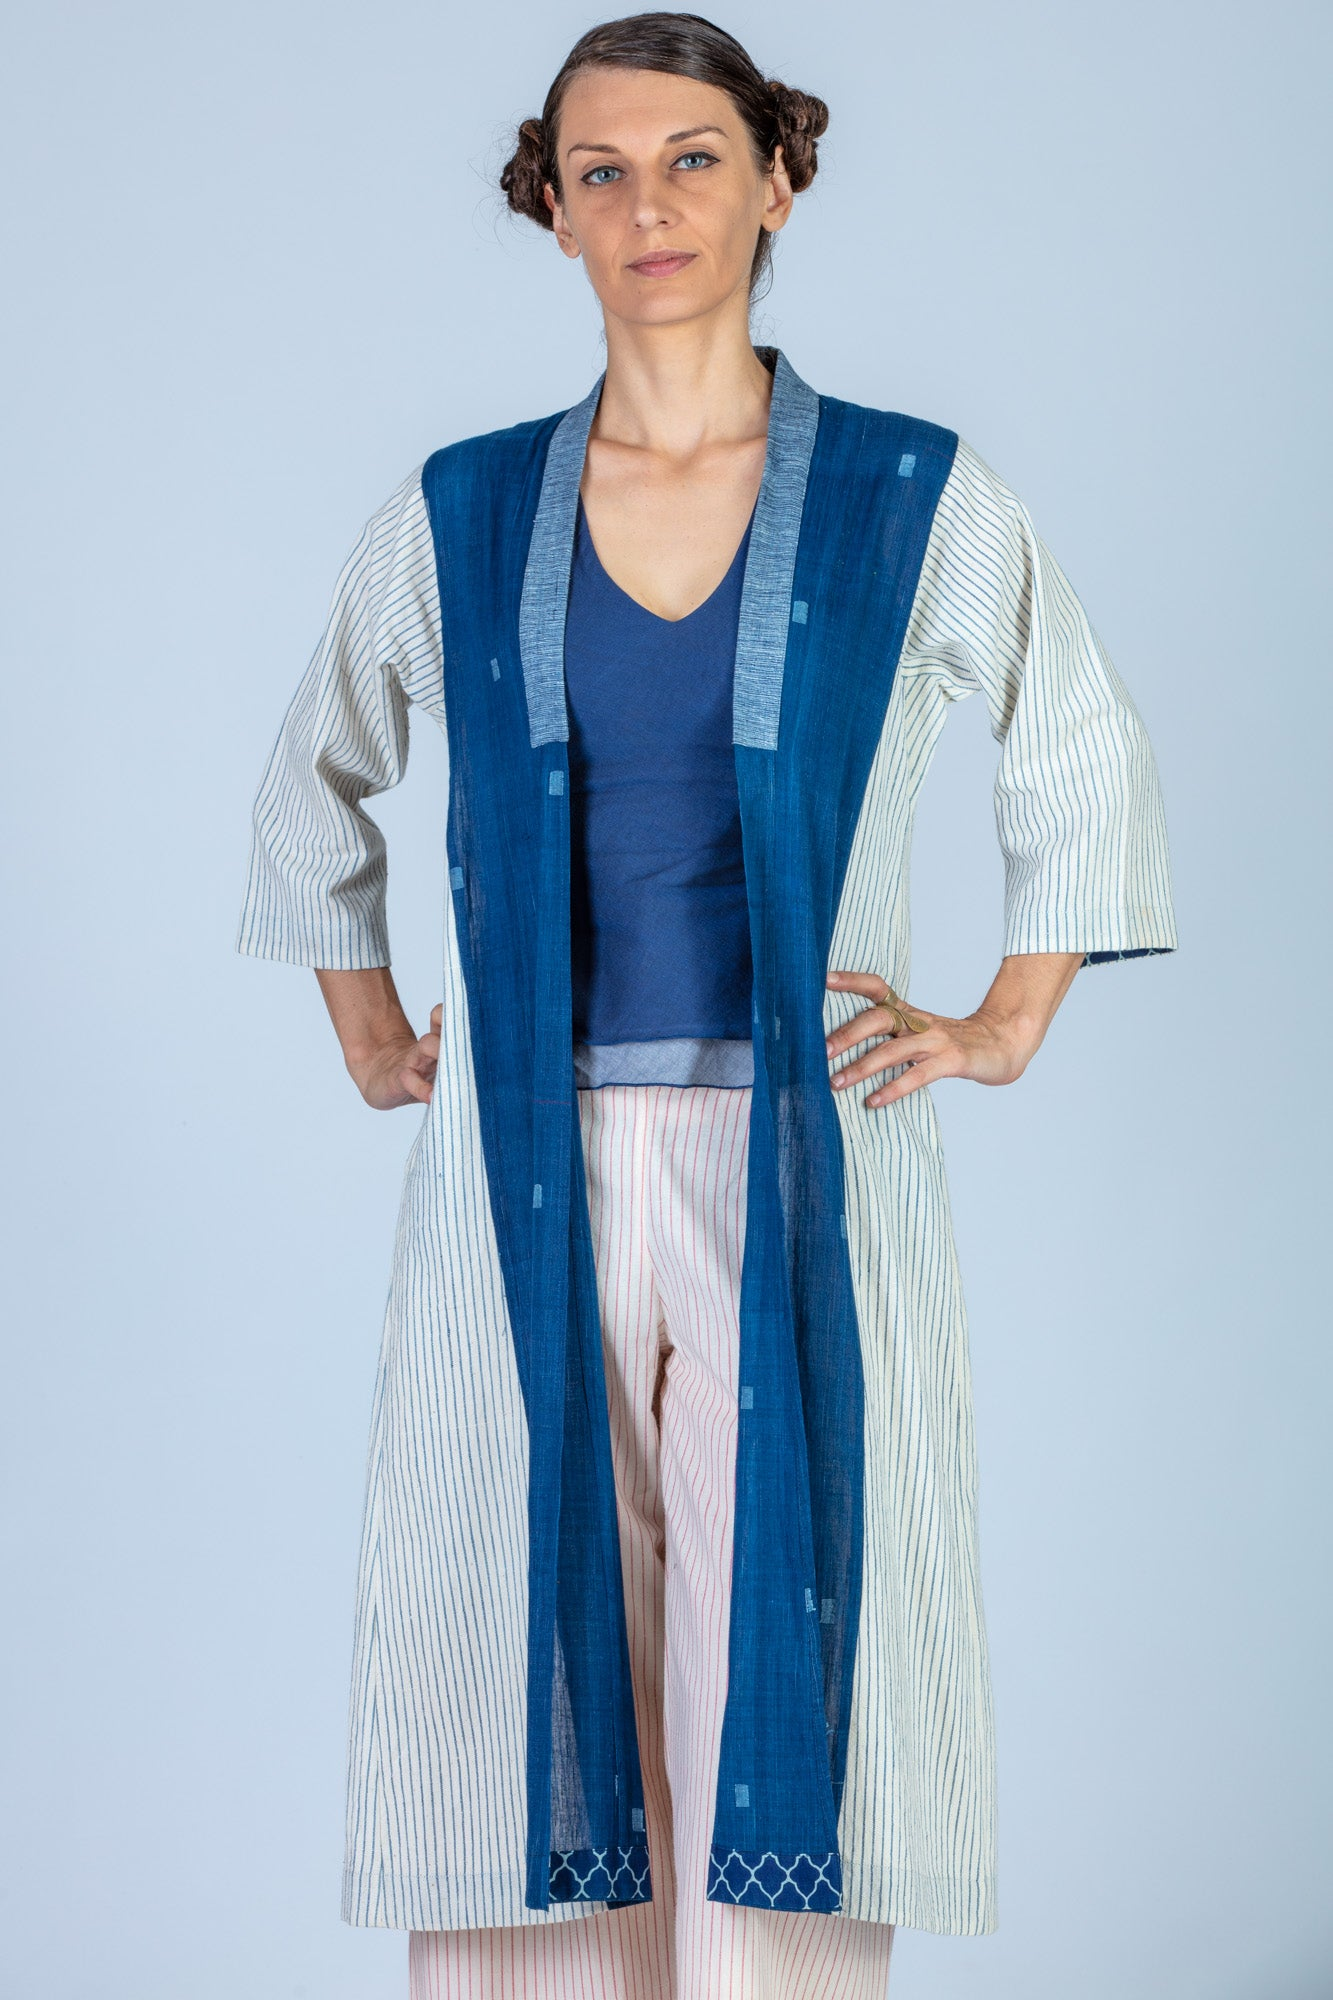 Indigo Organic cotton and Khadi Jamdani Jacket - SAYURI - Upasana Design Studio